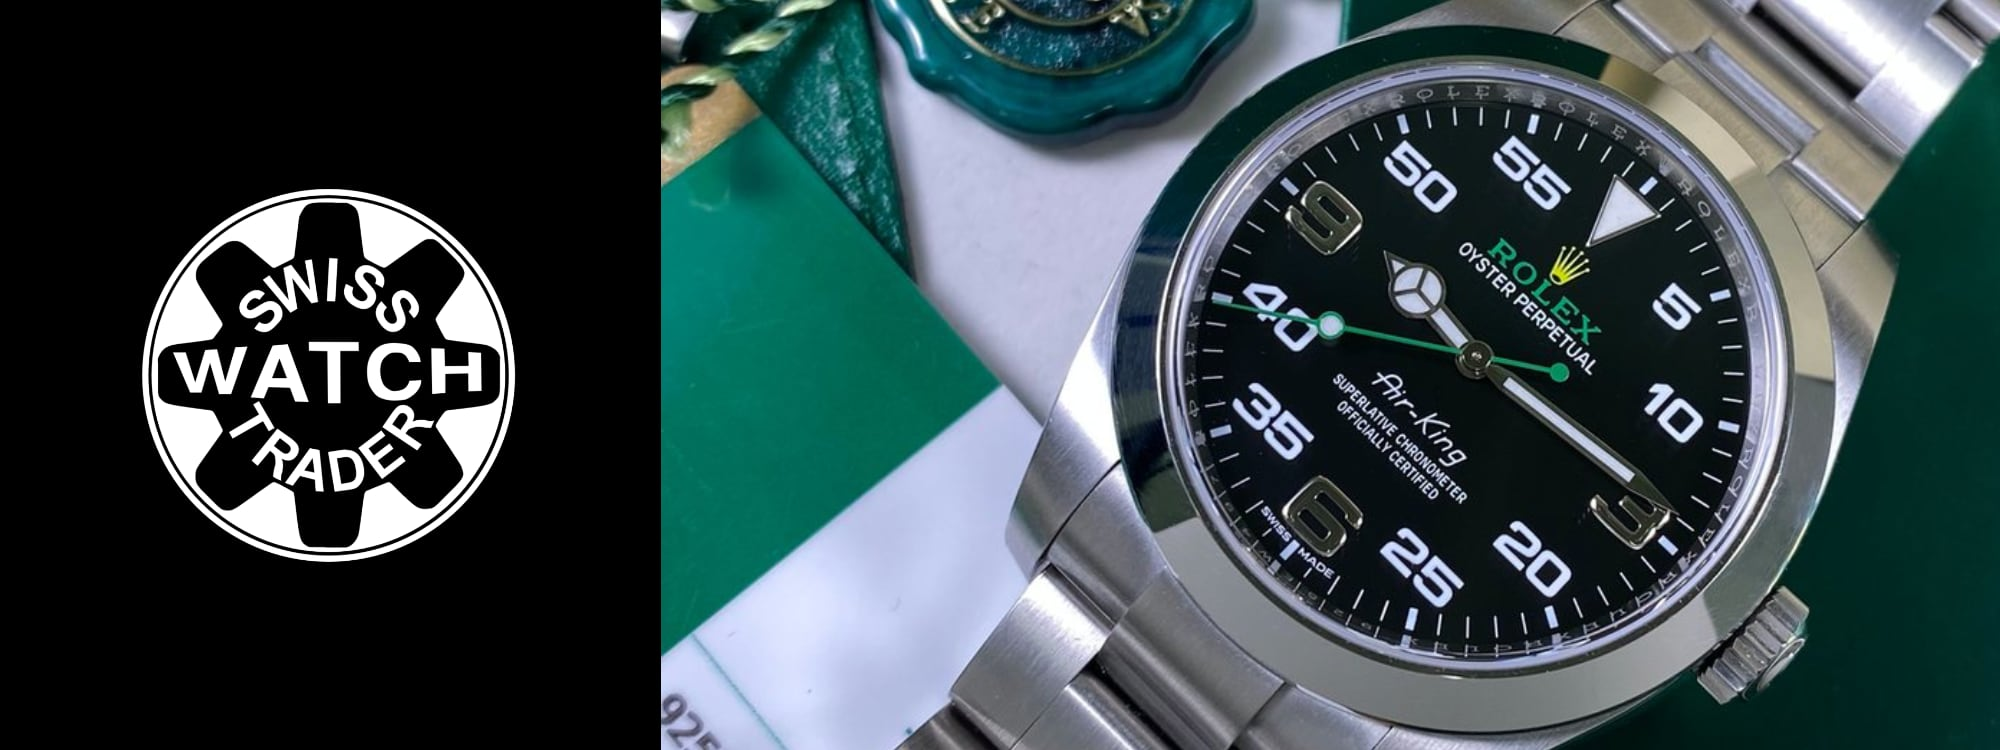 Rolex Air King Watches For Sale